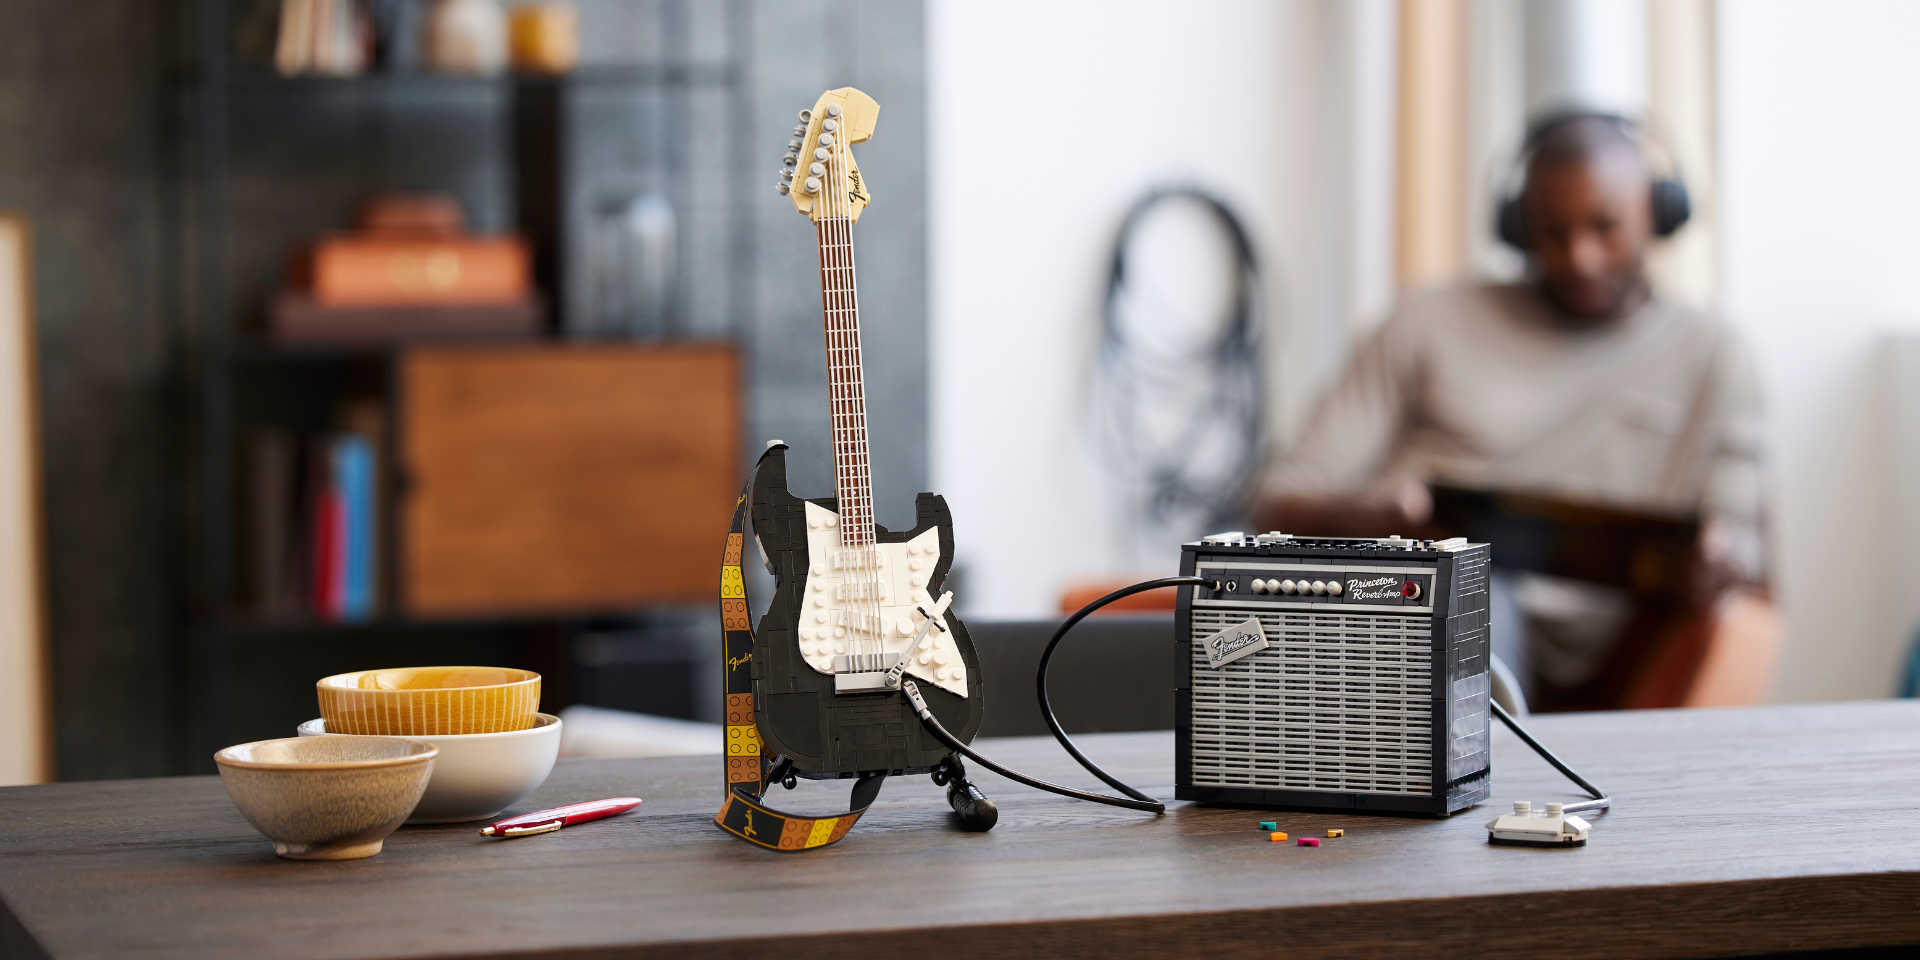 Rock out with the new LEGO Ideas Fender Stratocaster set designed by Tomáš Letenay